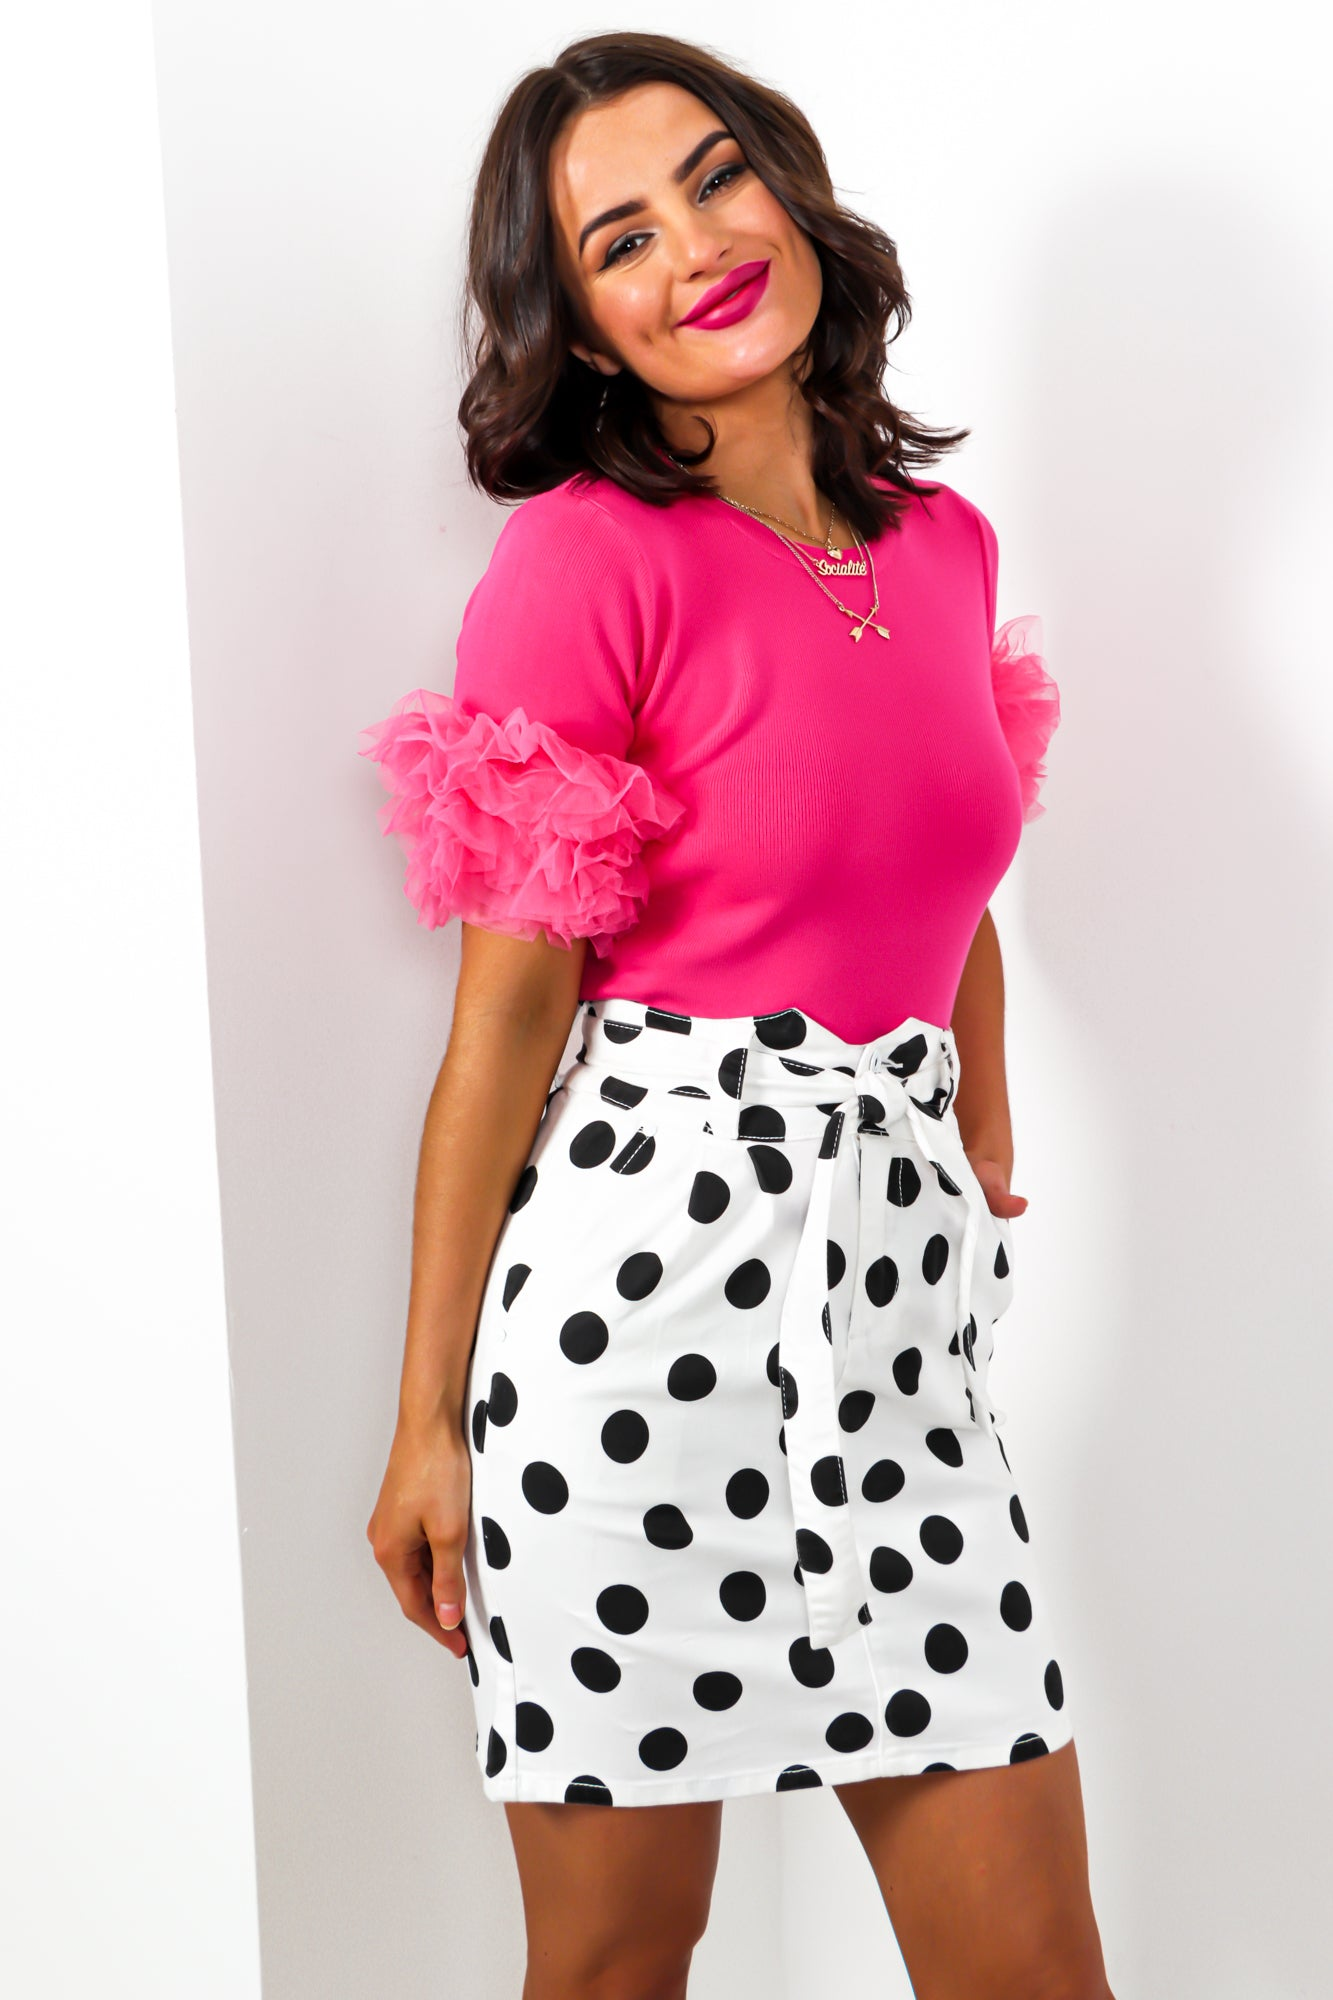 Round In Circles - Skirt In WHITE/POLKA-DOT